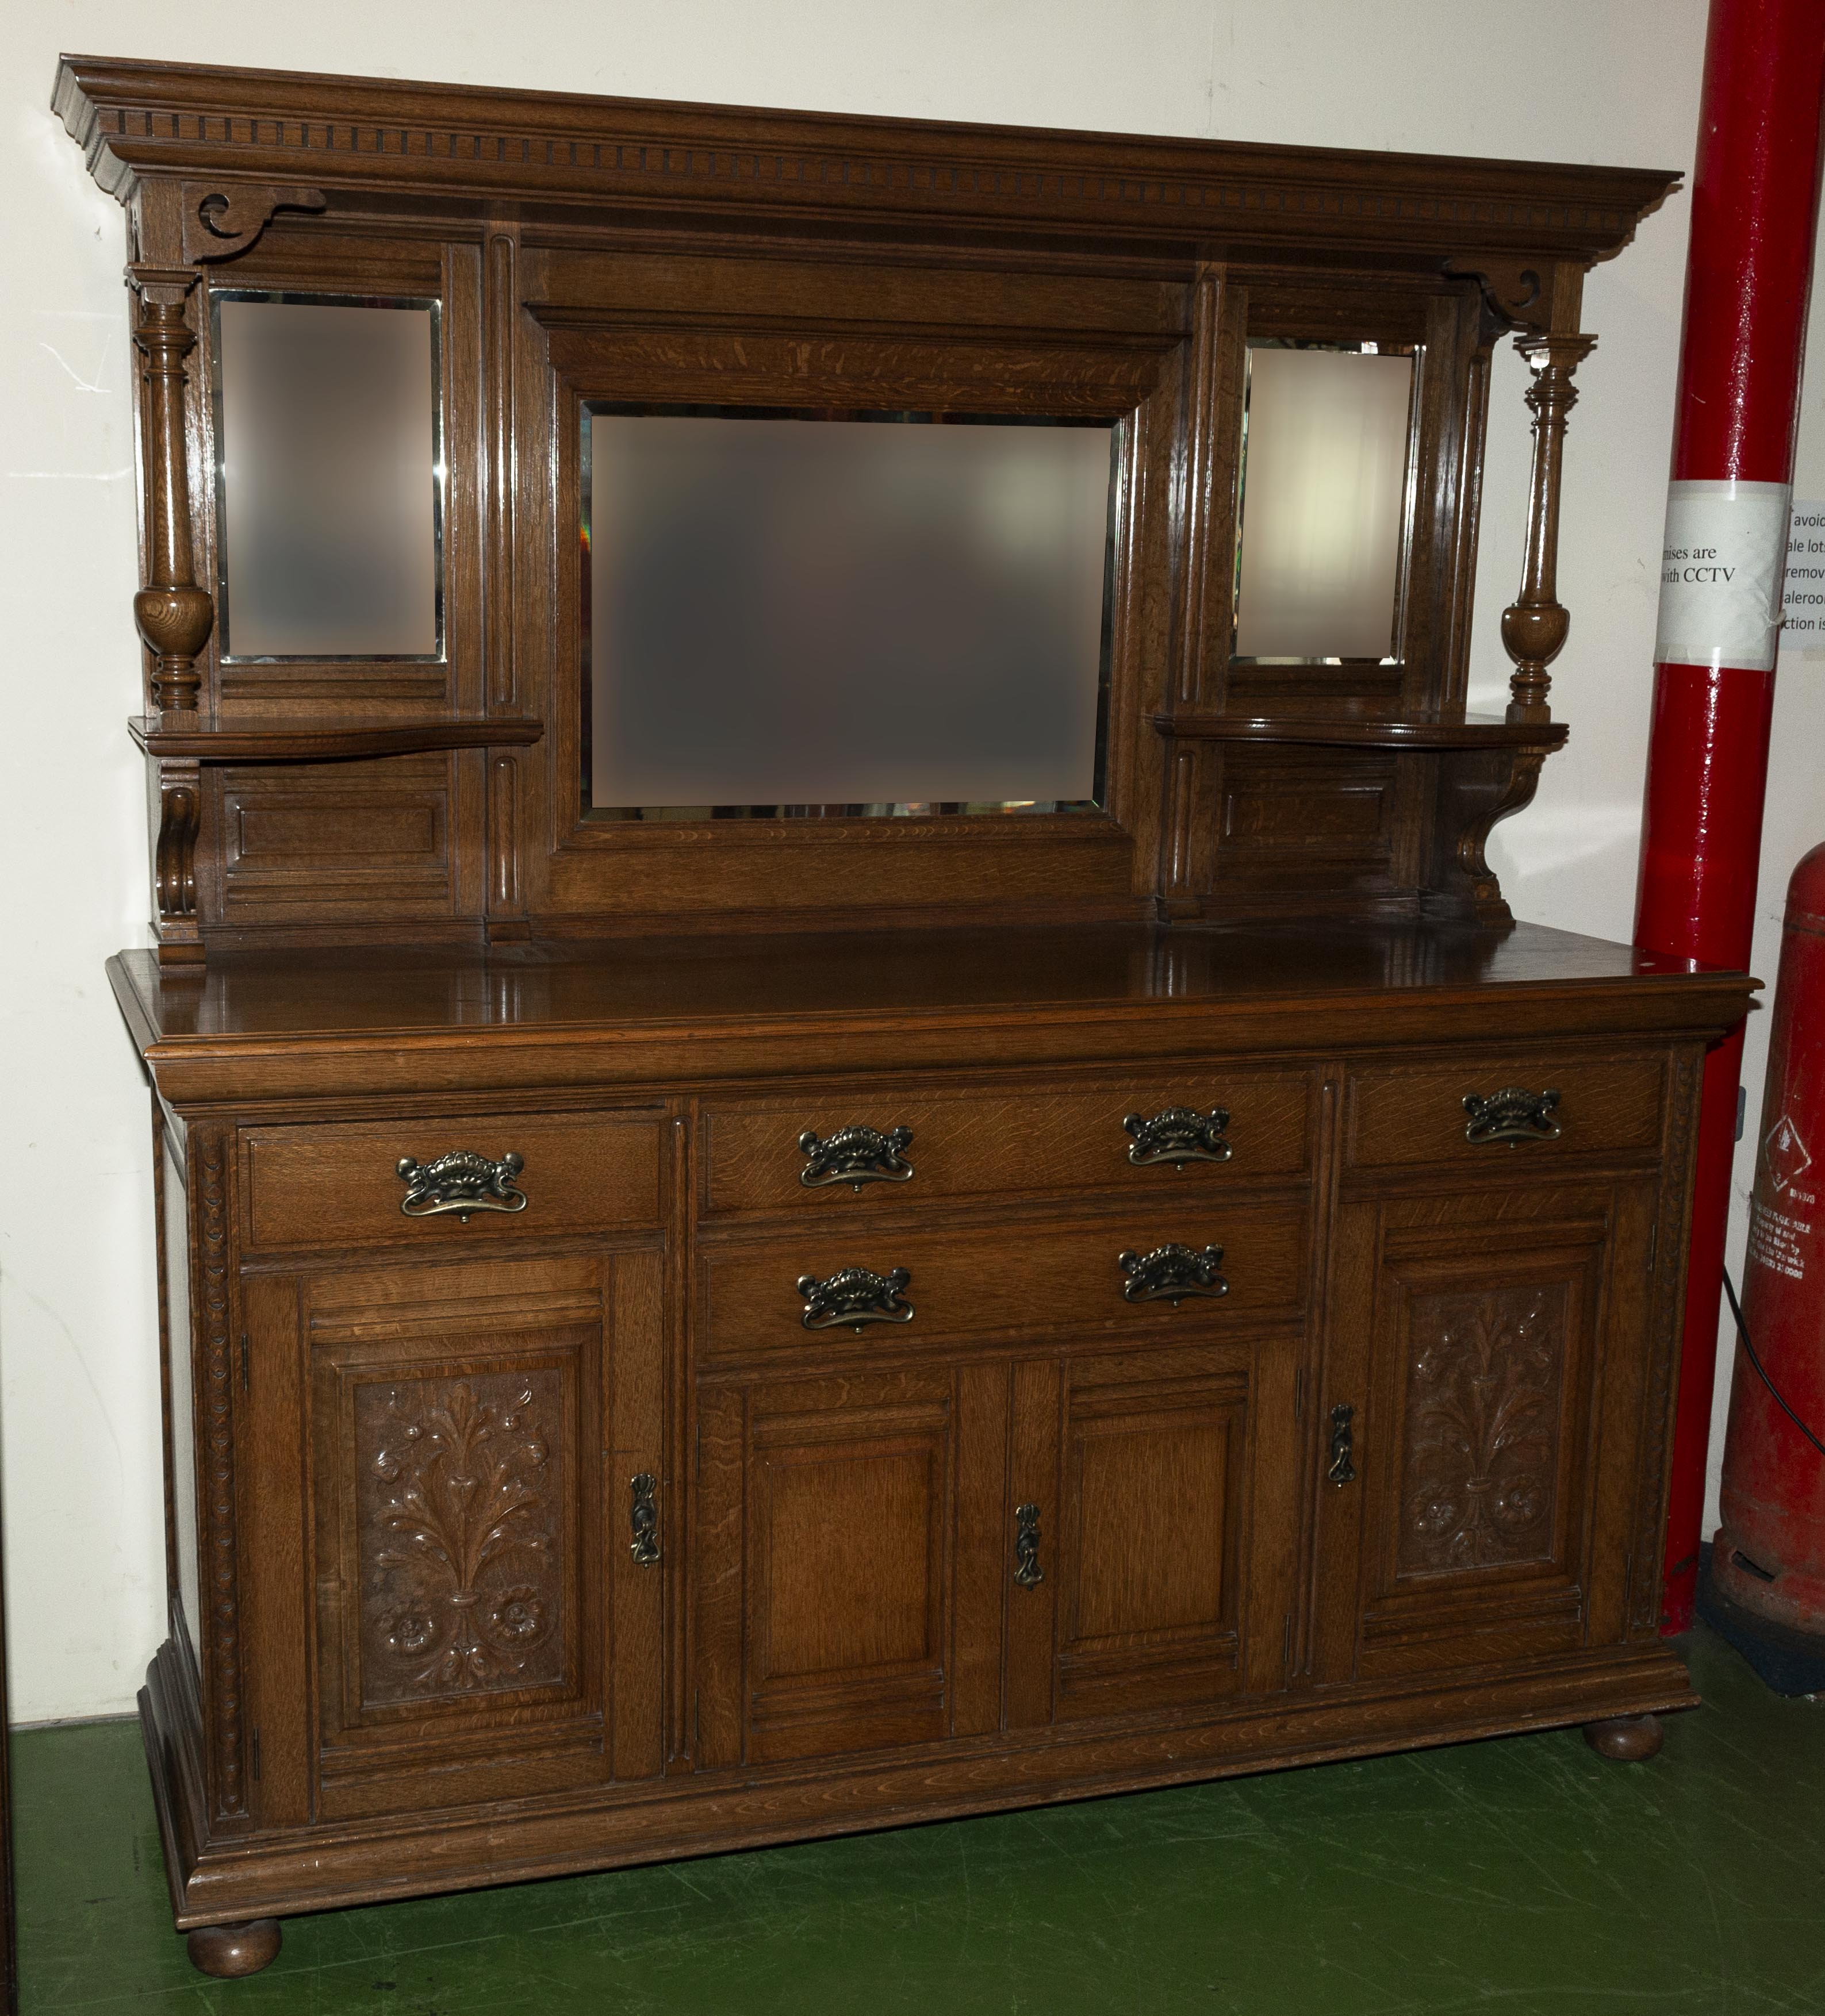 Lot 11 - A Good quality oak late Victorian mirror back sideboard in very good condition.